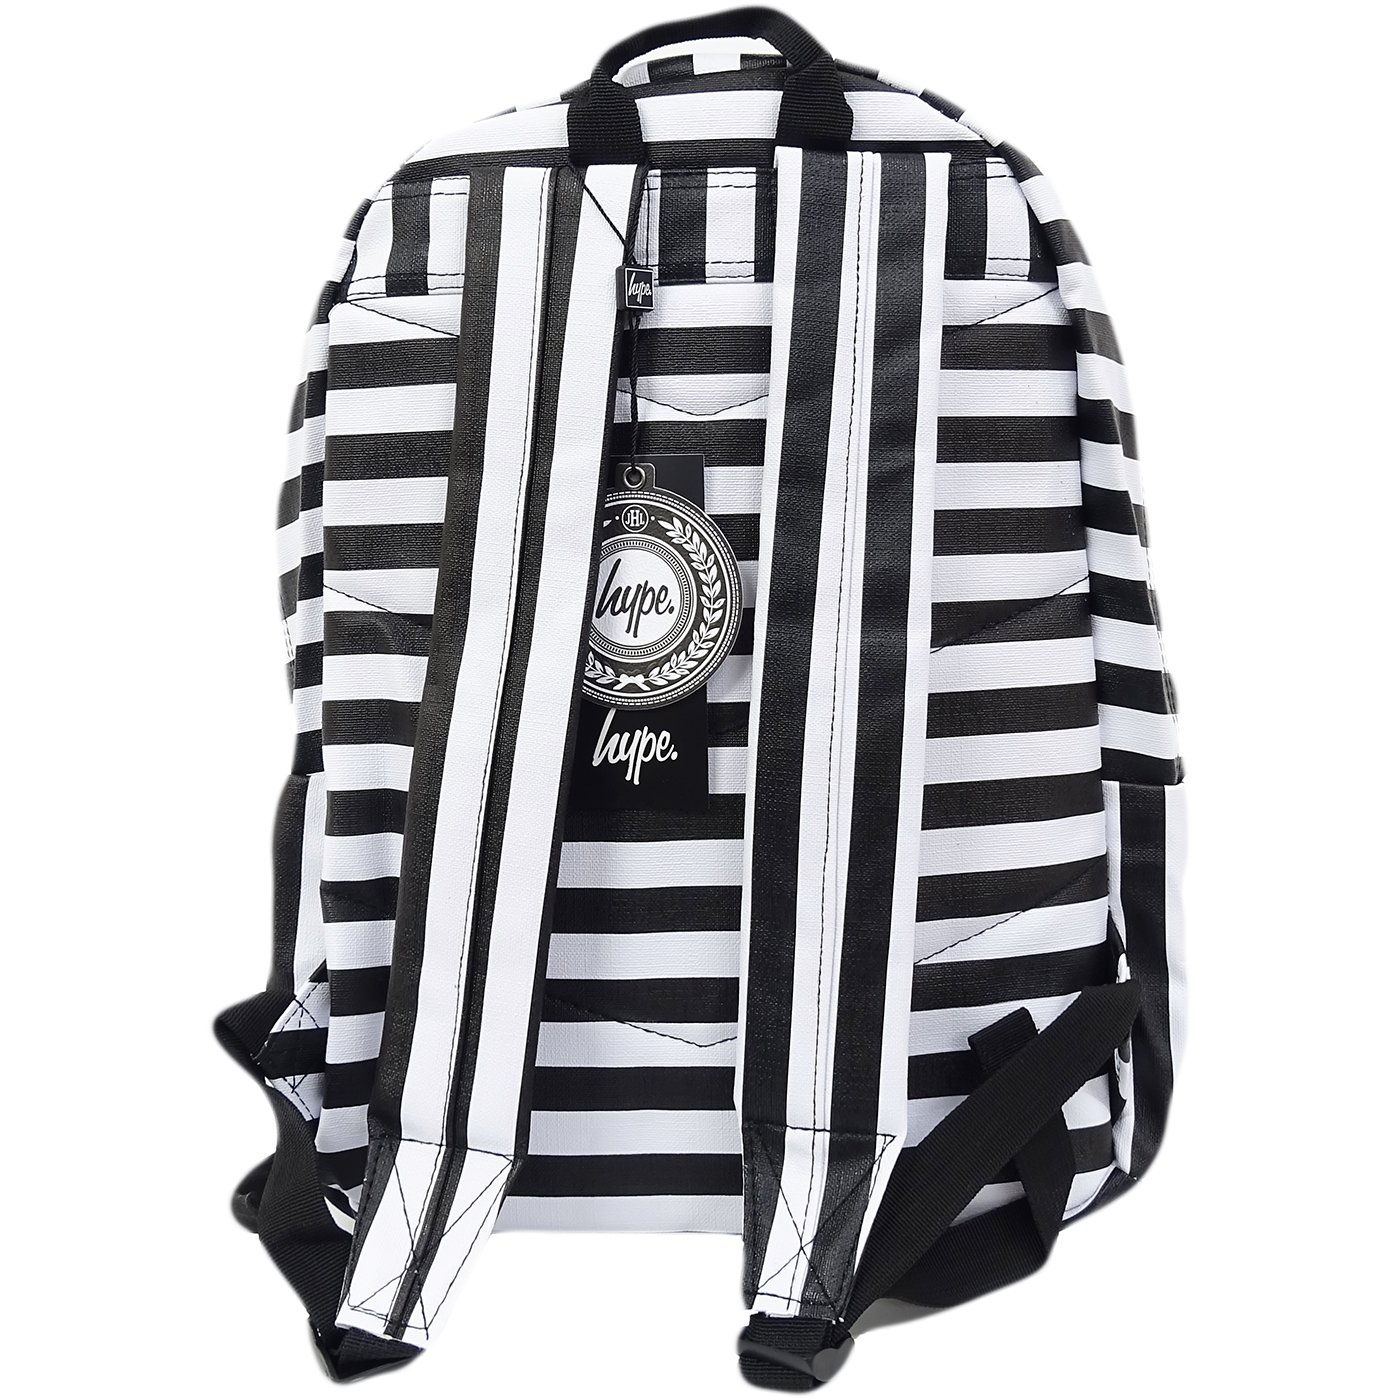 2ec4f592ce Hype Black   White Black And White Stripe Pu Bag - Humbug  Amazon.co.uk   Clothing